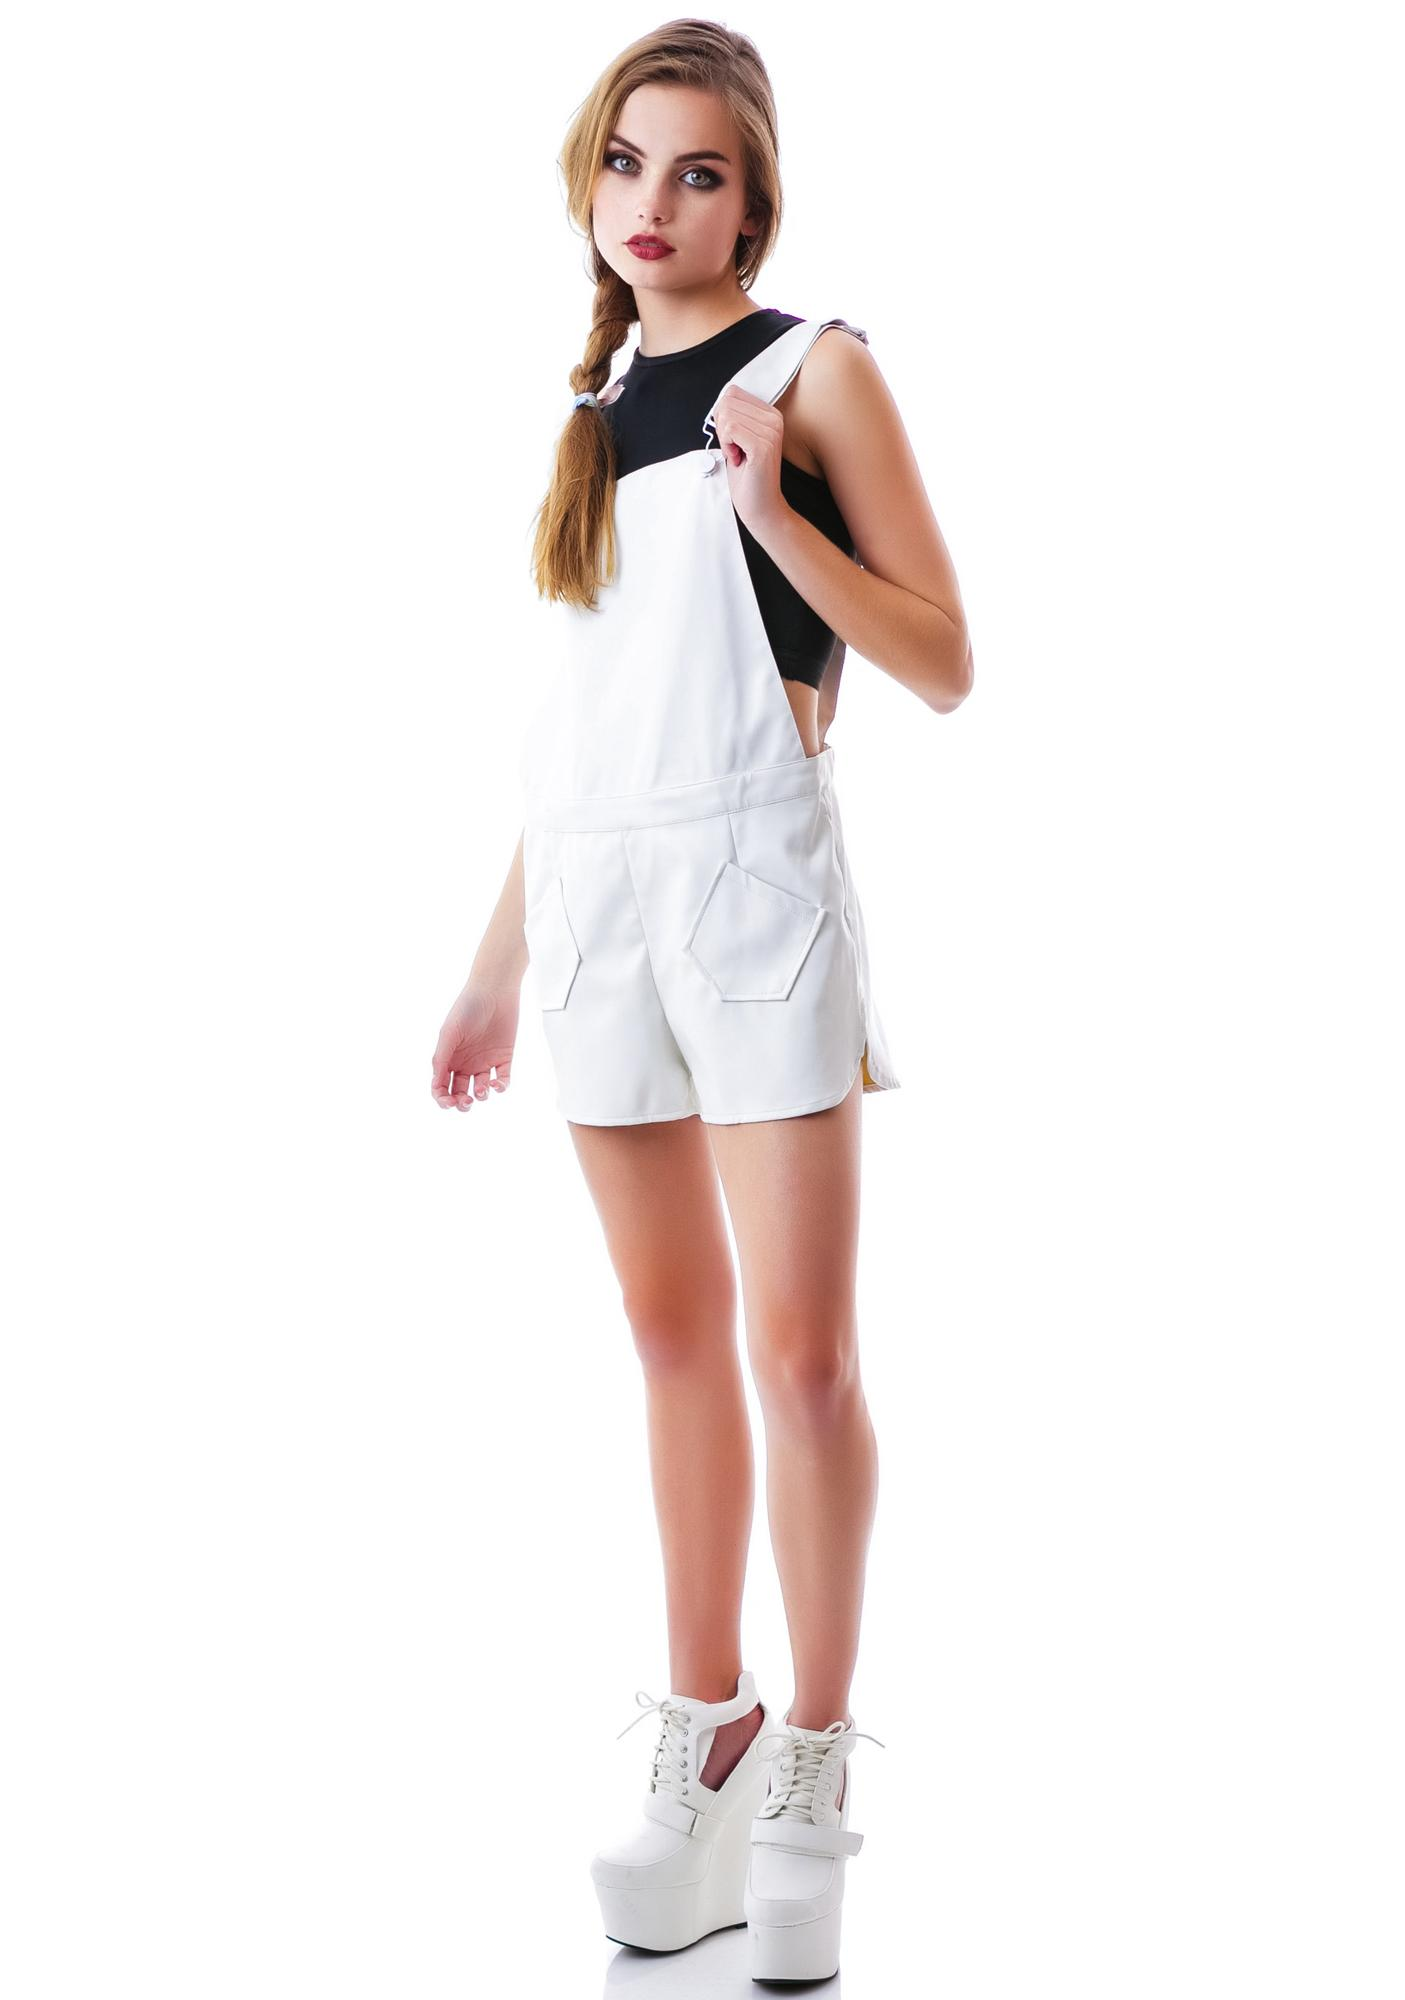 Olivia Veggie Leather Overall Shorts